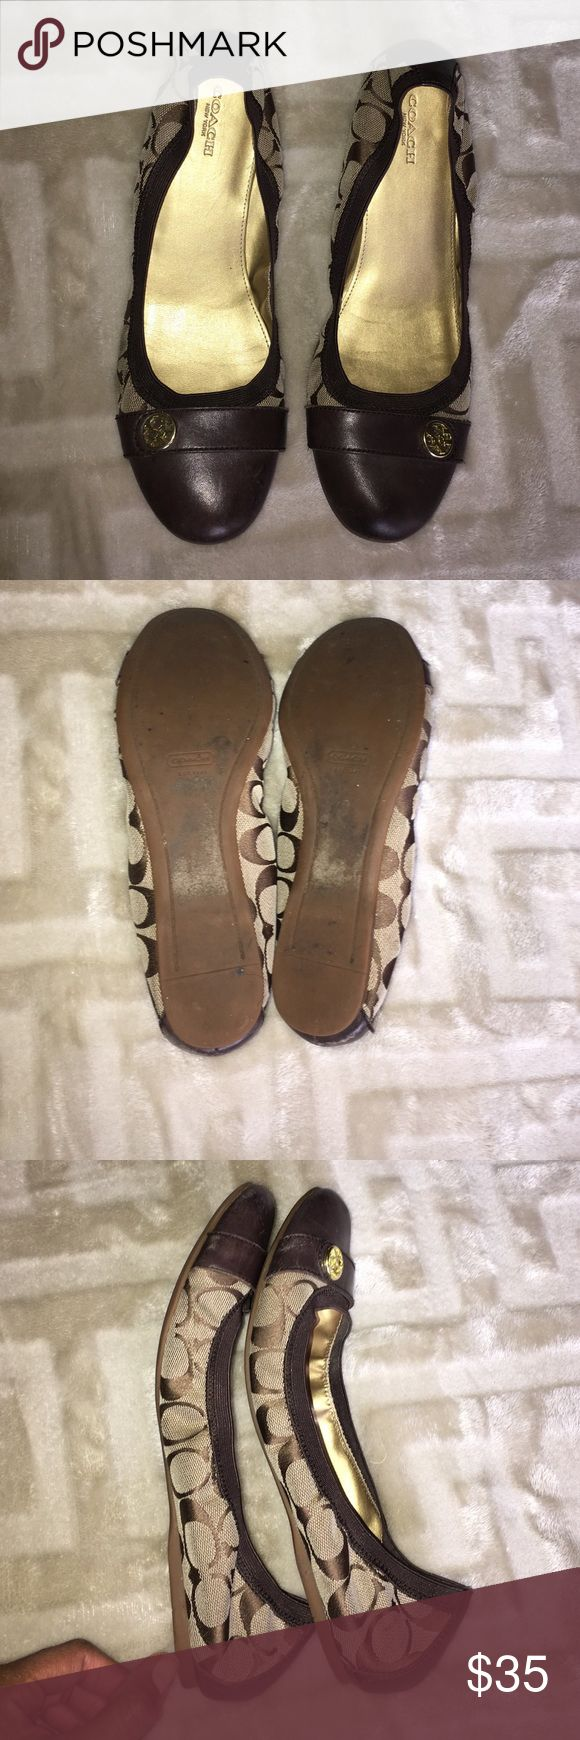 Coach flats SZ 10 Coach flats SZ 10 Coach Shoes Flats & Loafers